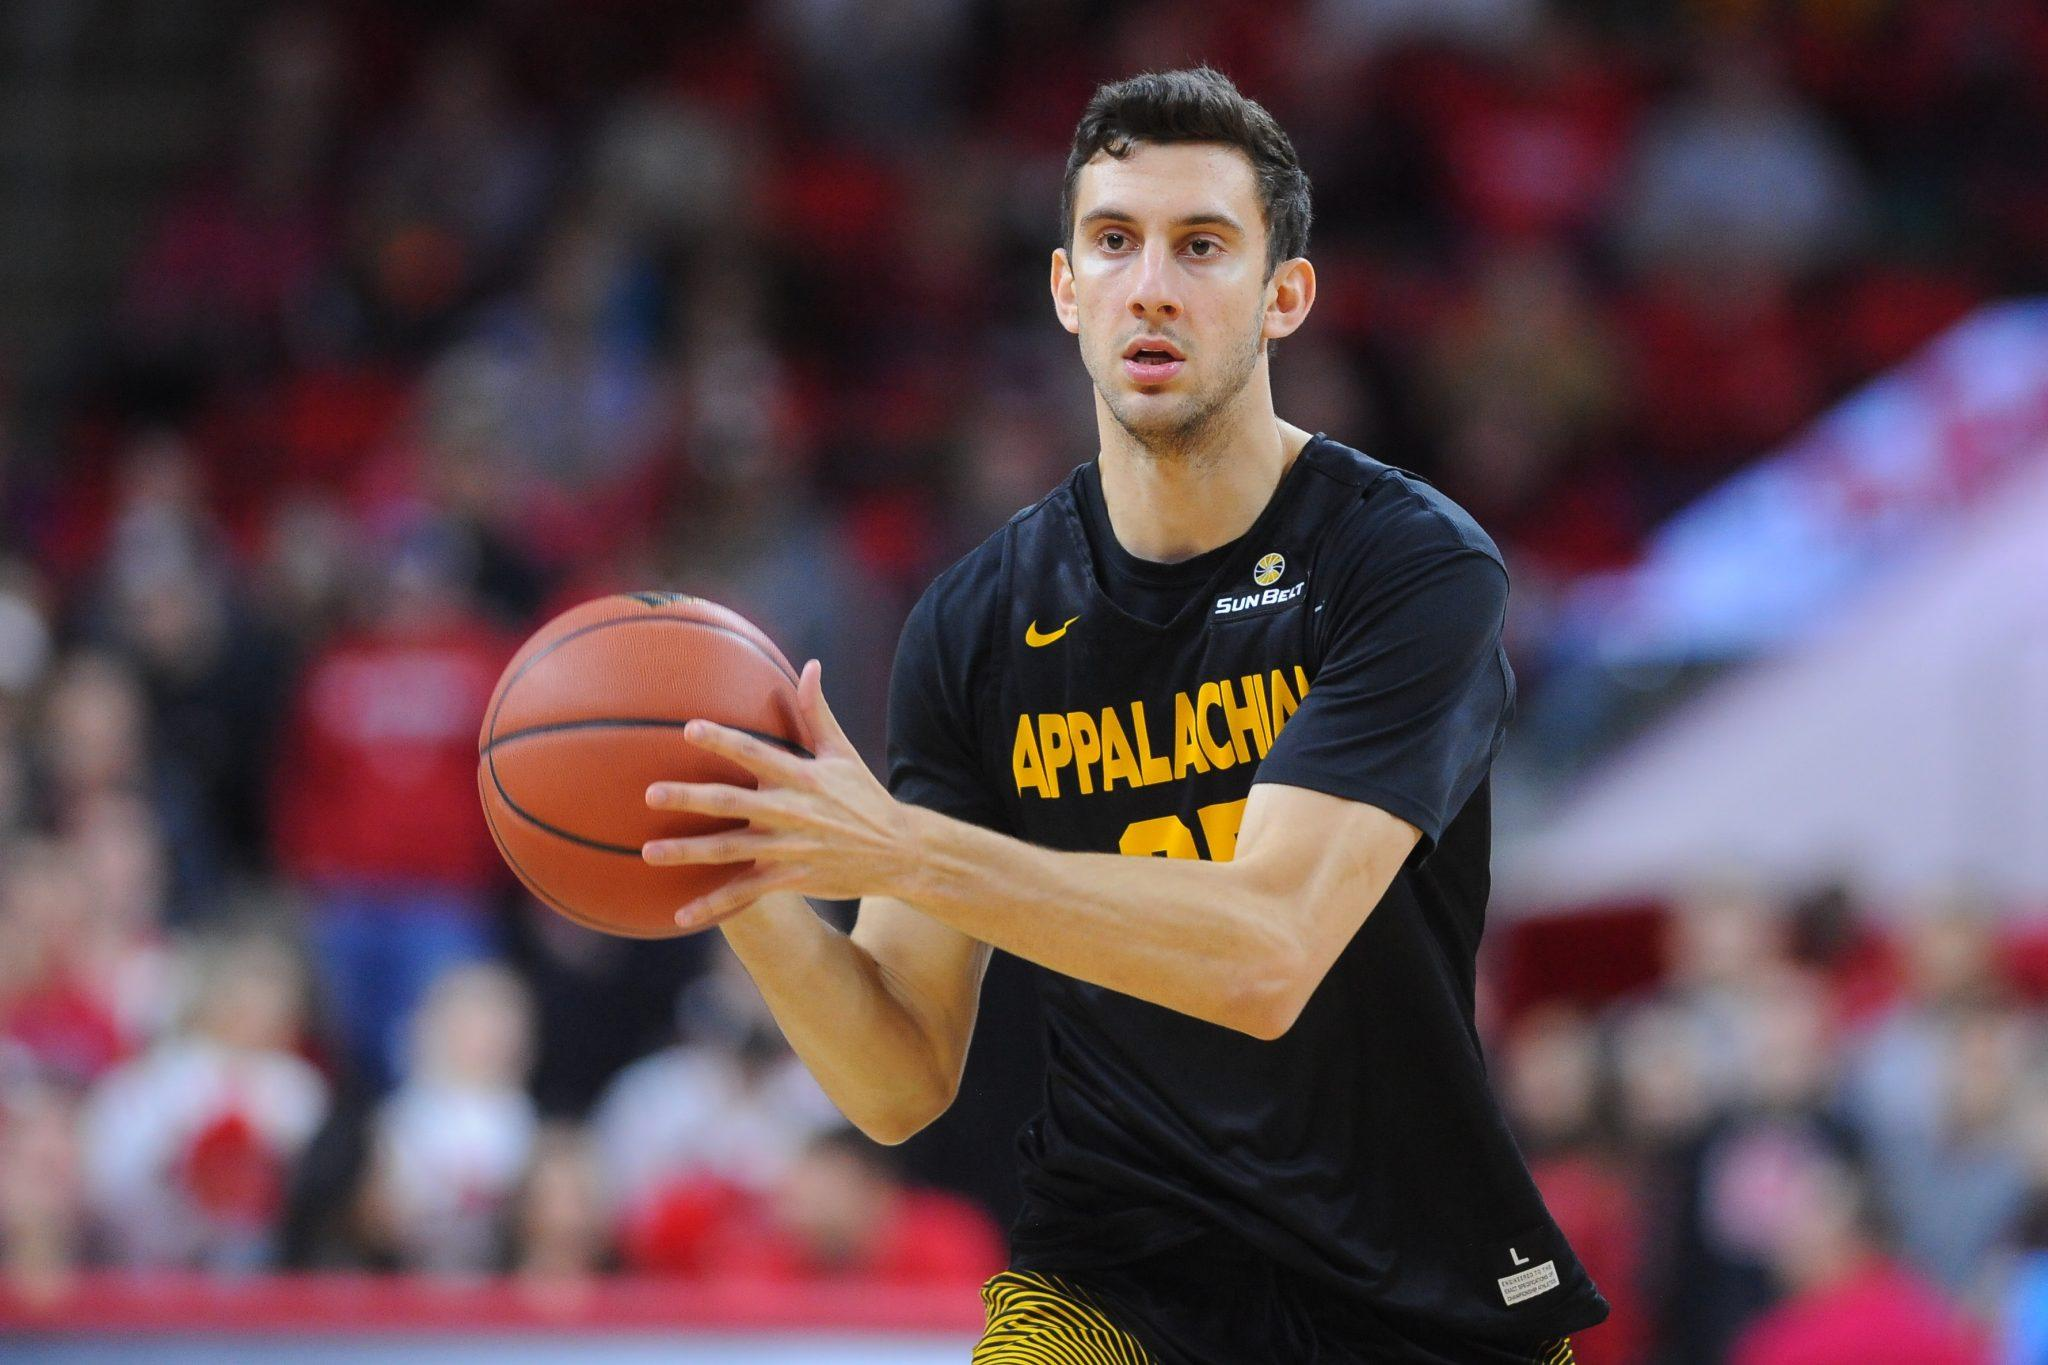 Appalachian State takes on NC State in non-conference men's basketball action at PNC Arena on Thursday, December 15, 2016 in Raleigh, North Carolina. Photo courtesy: App State Athletics/Tim Cowie